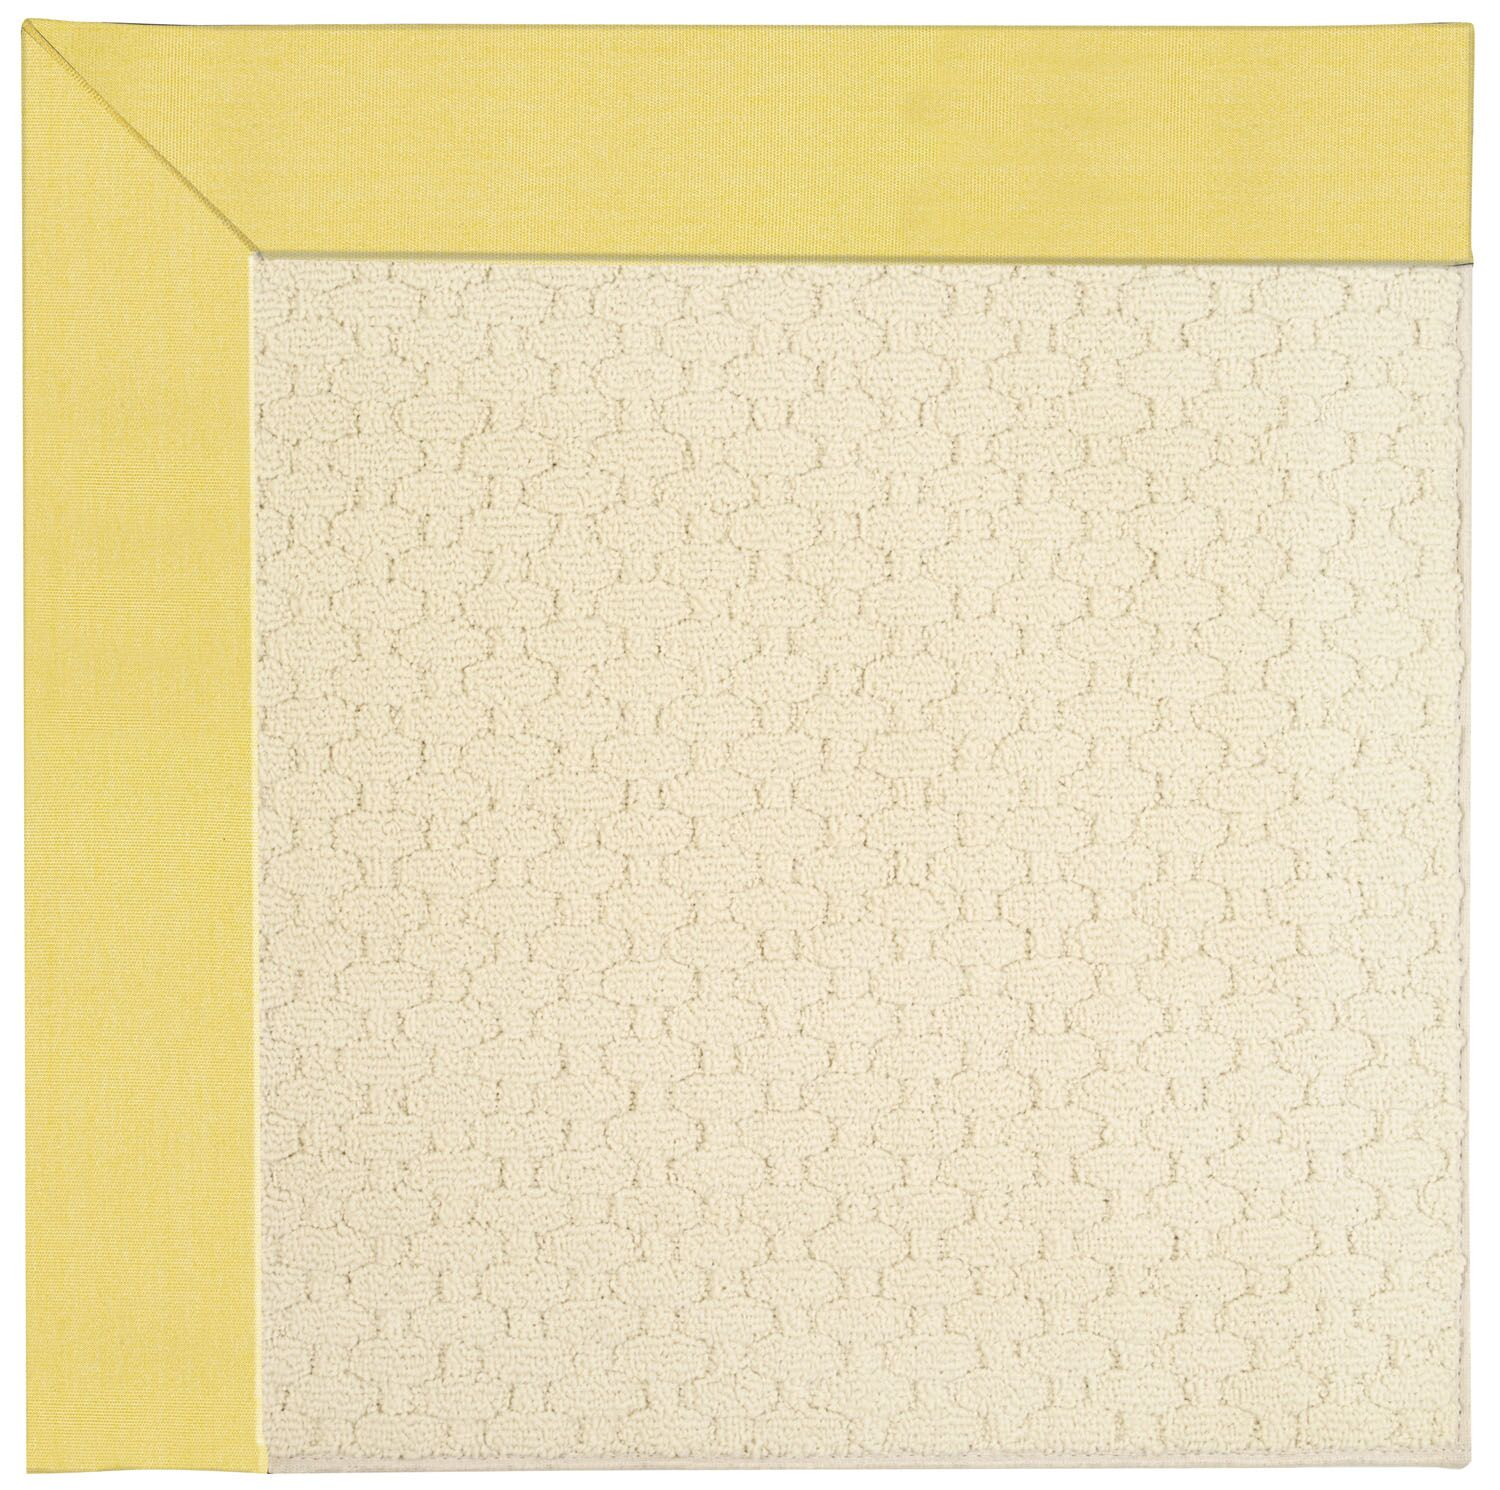 Lisle Off White Indoor/Outdoor Area Rug Rug Size: Rectangle 5' x 8'